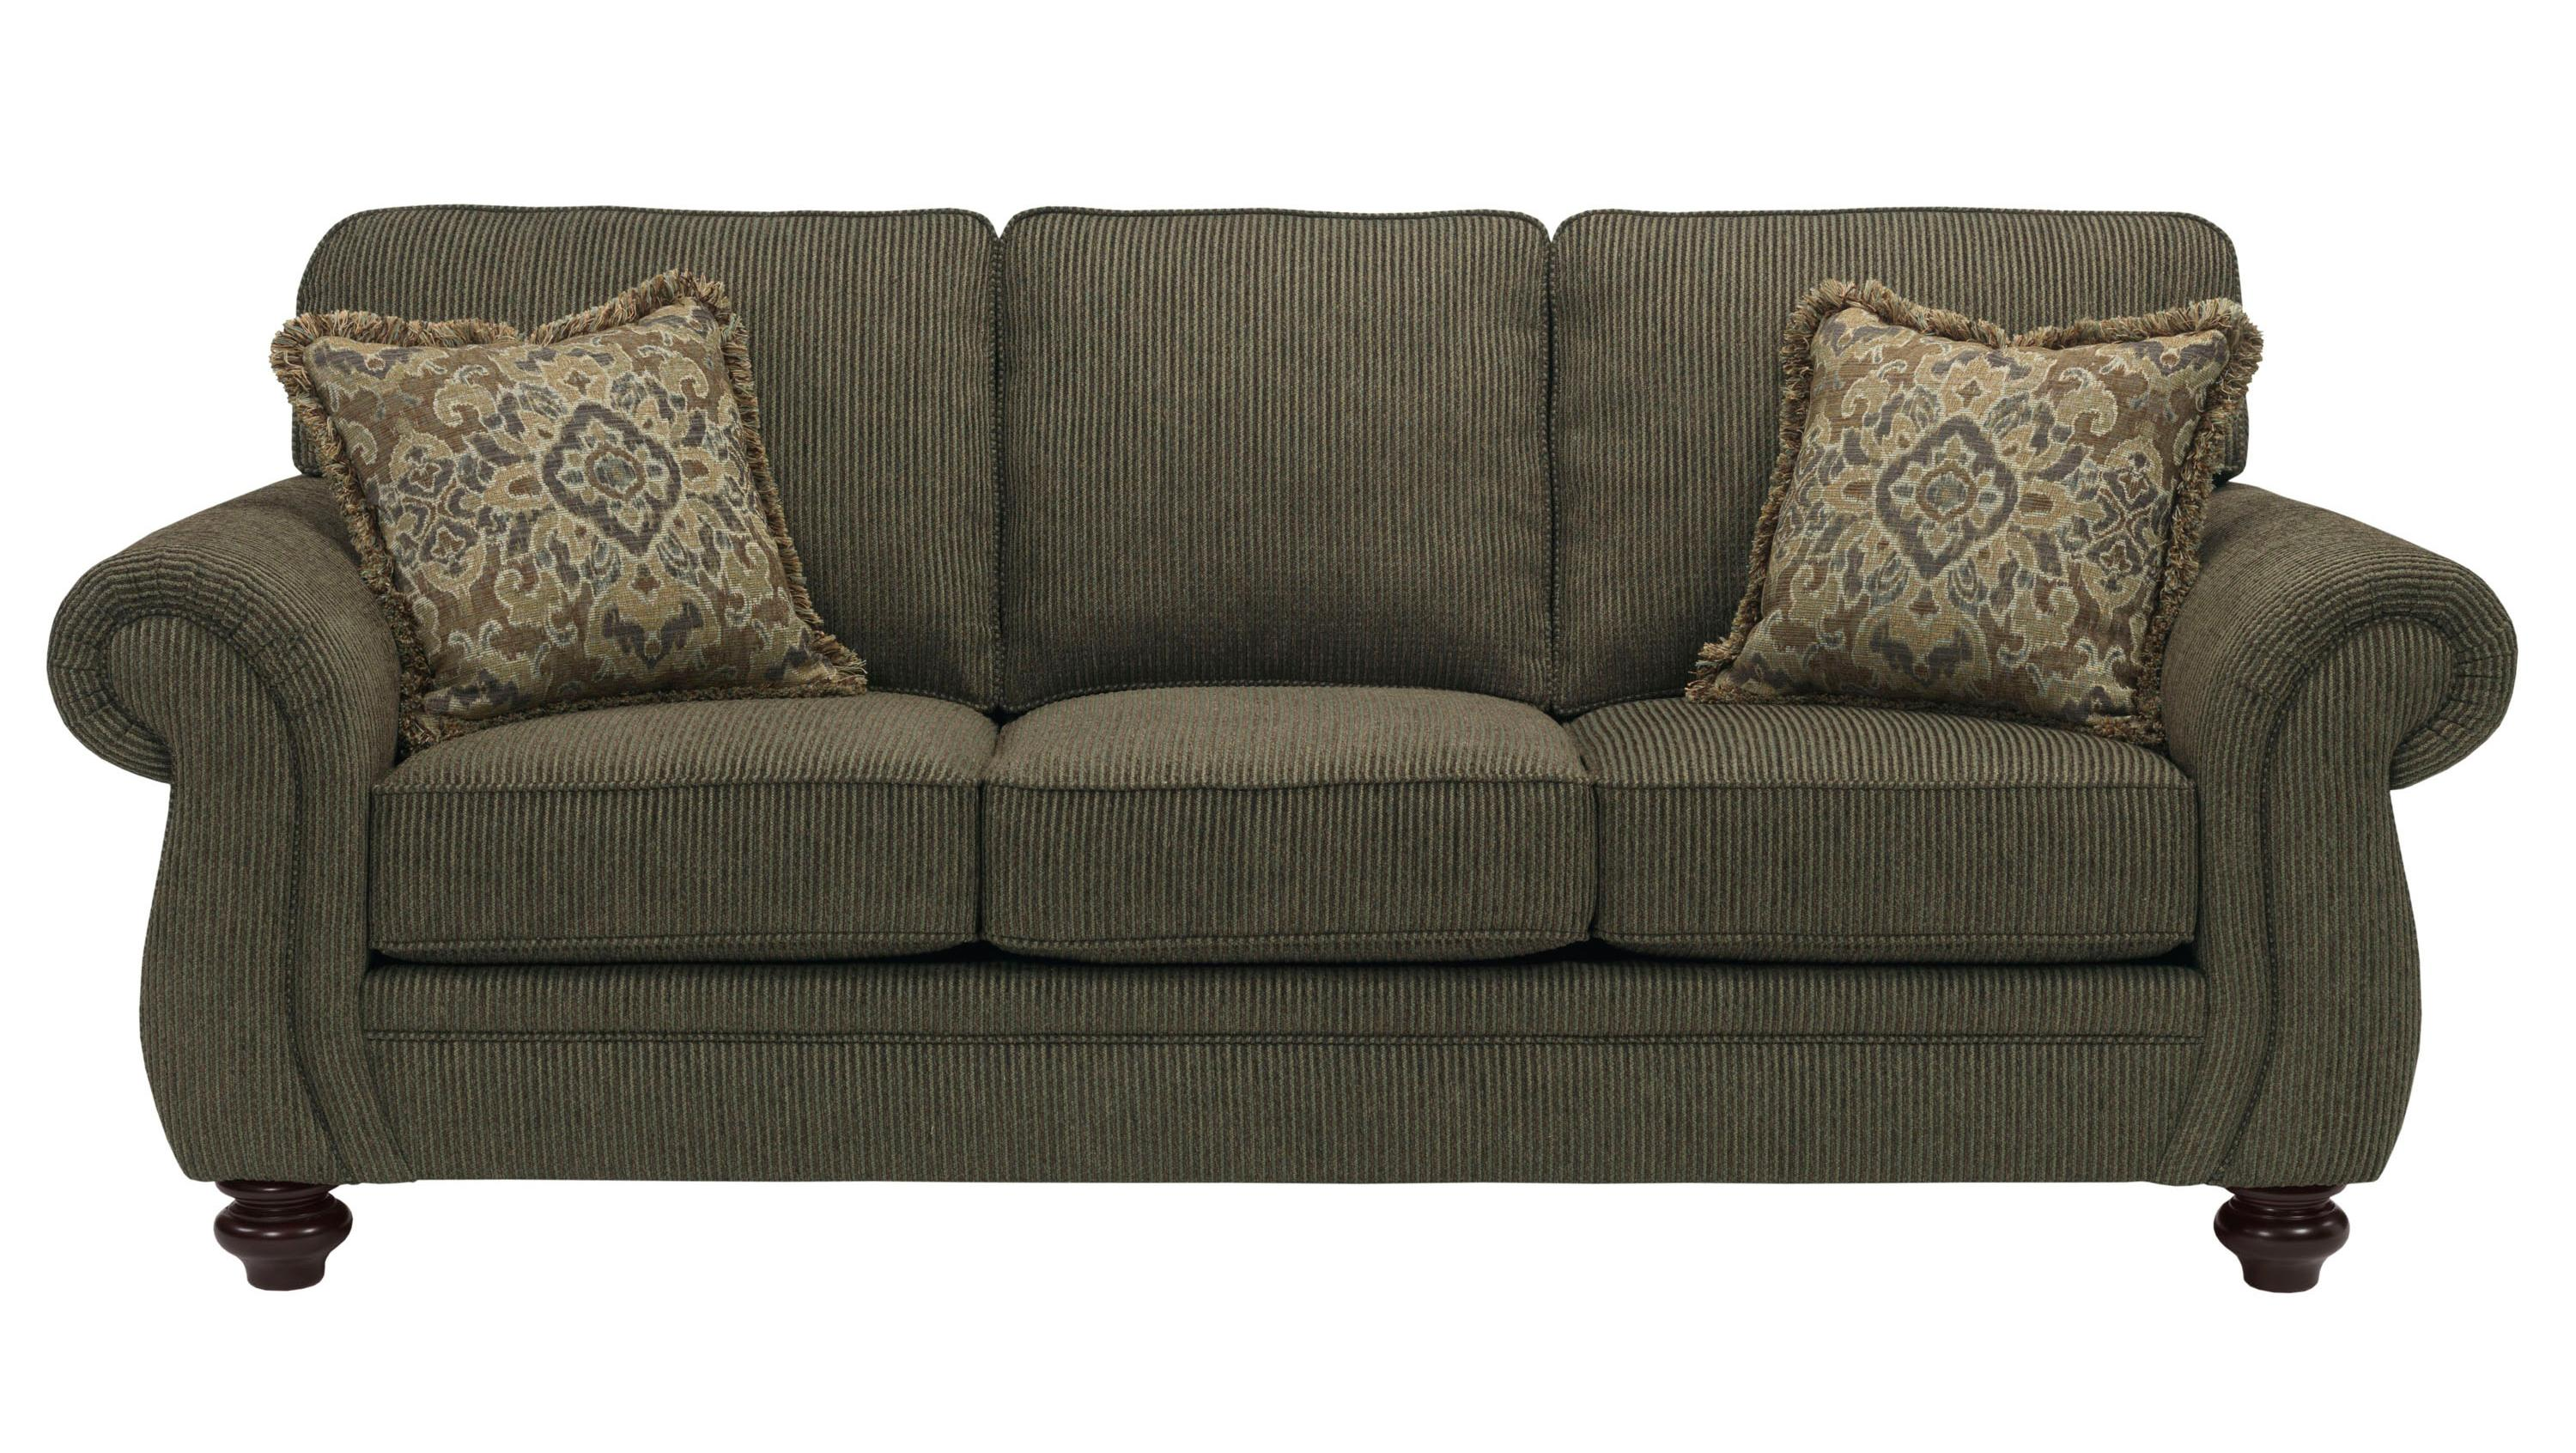 Broyhill express cassandra 3688 3q traditional sofa with for Traditional sofas and loveseats